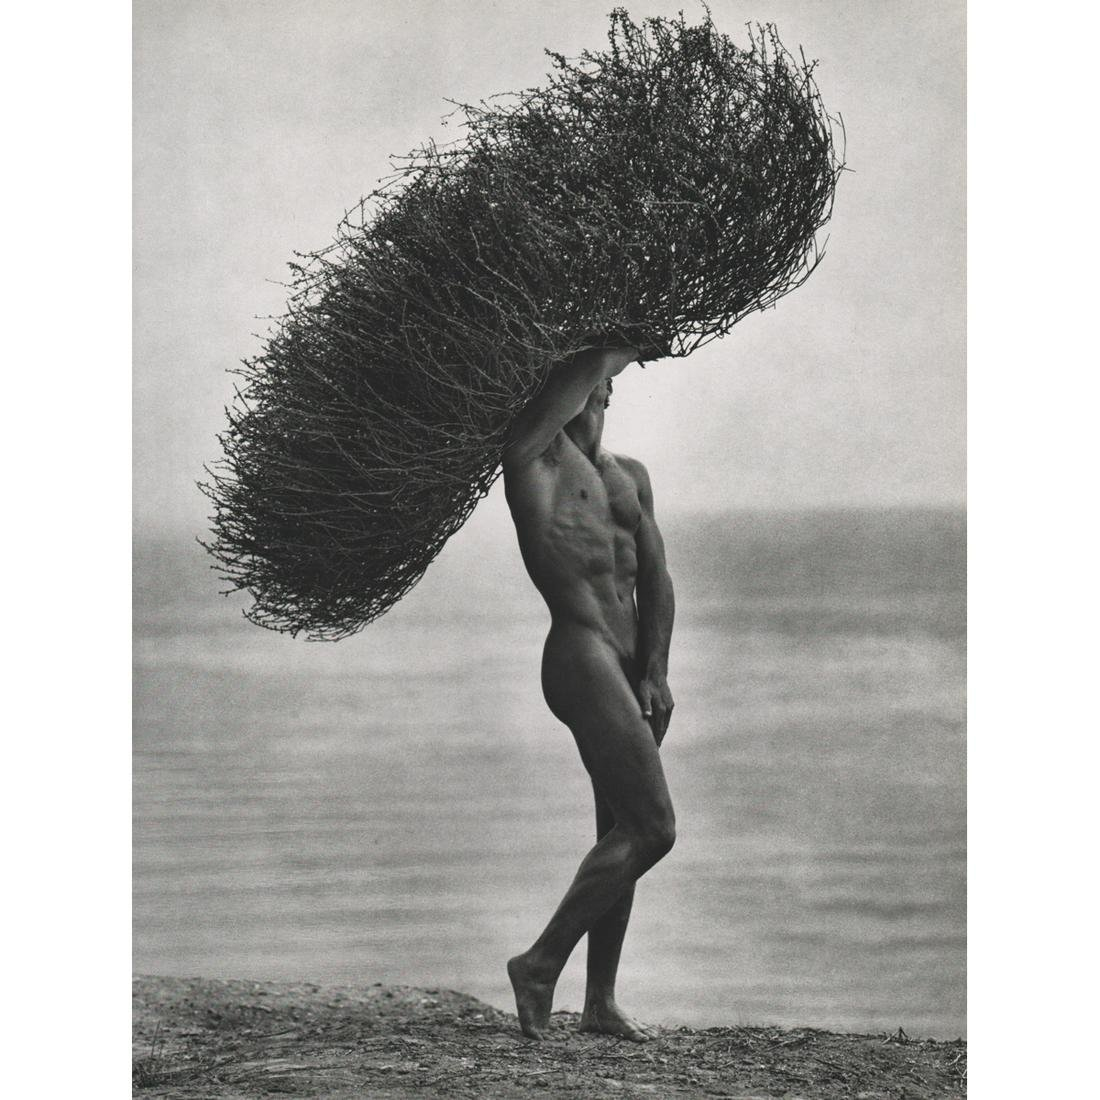 HERB RITTS - Male Nude with Tumbleweed, 1986